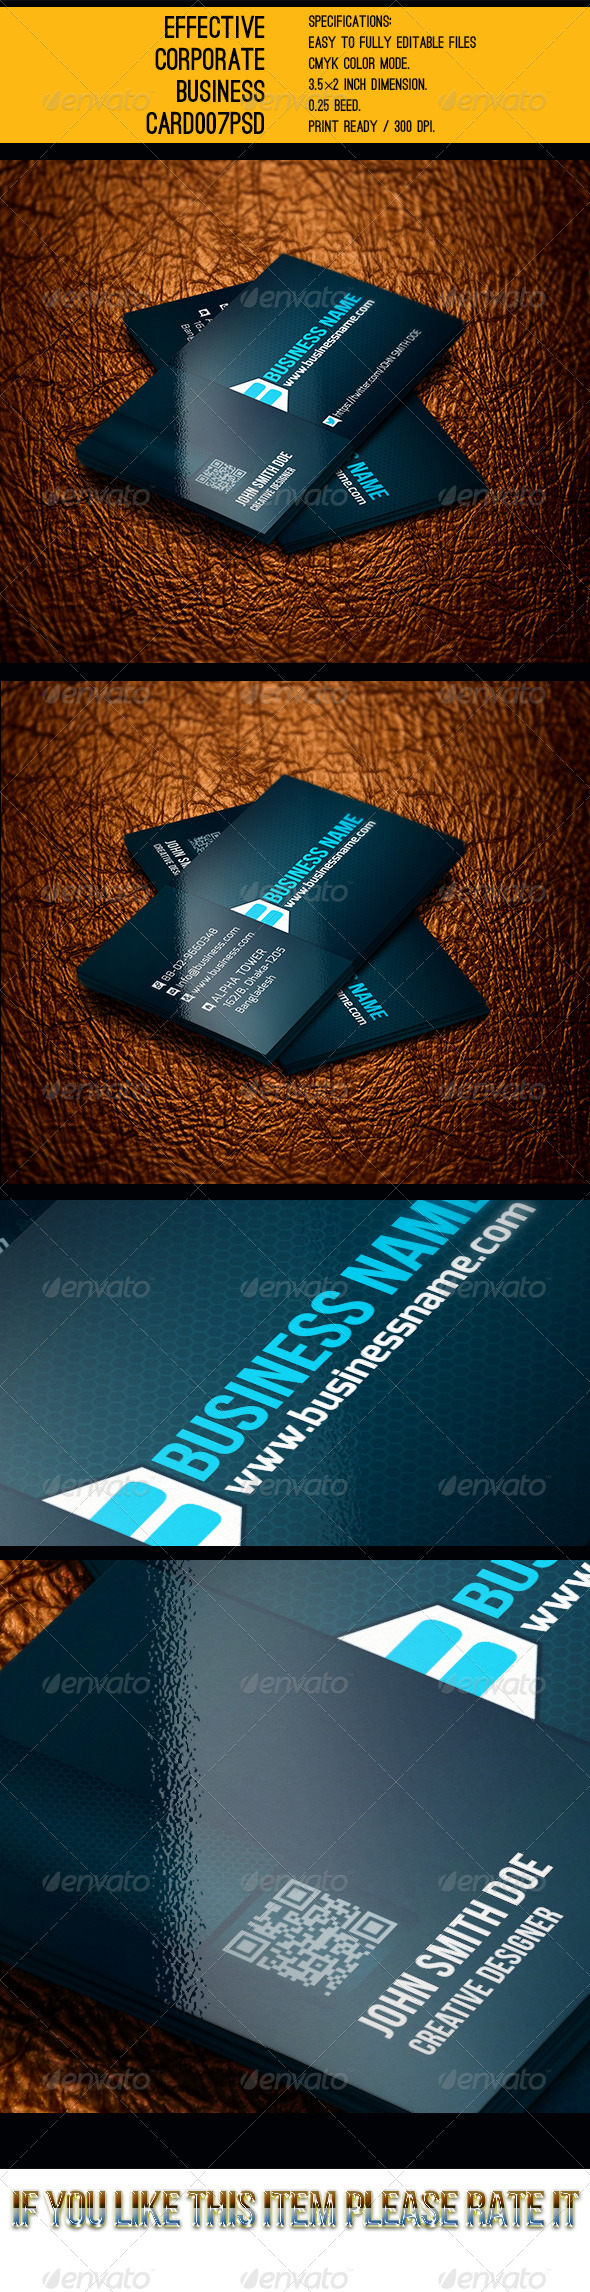 GraphicRiver Effective Corporate Business Card PSD 6134472